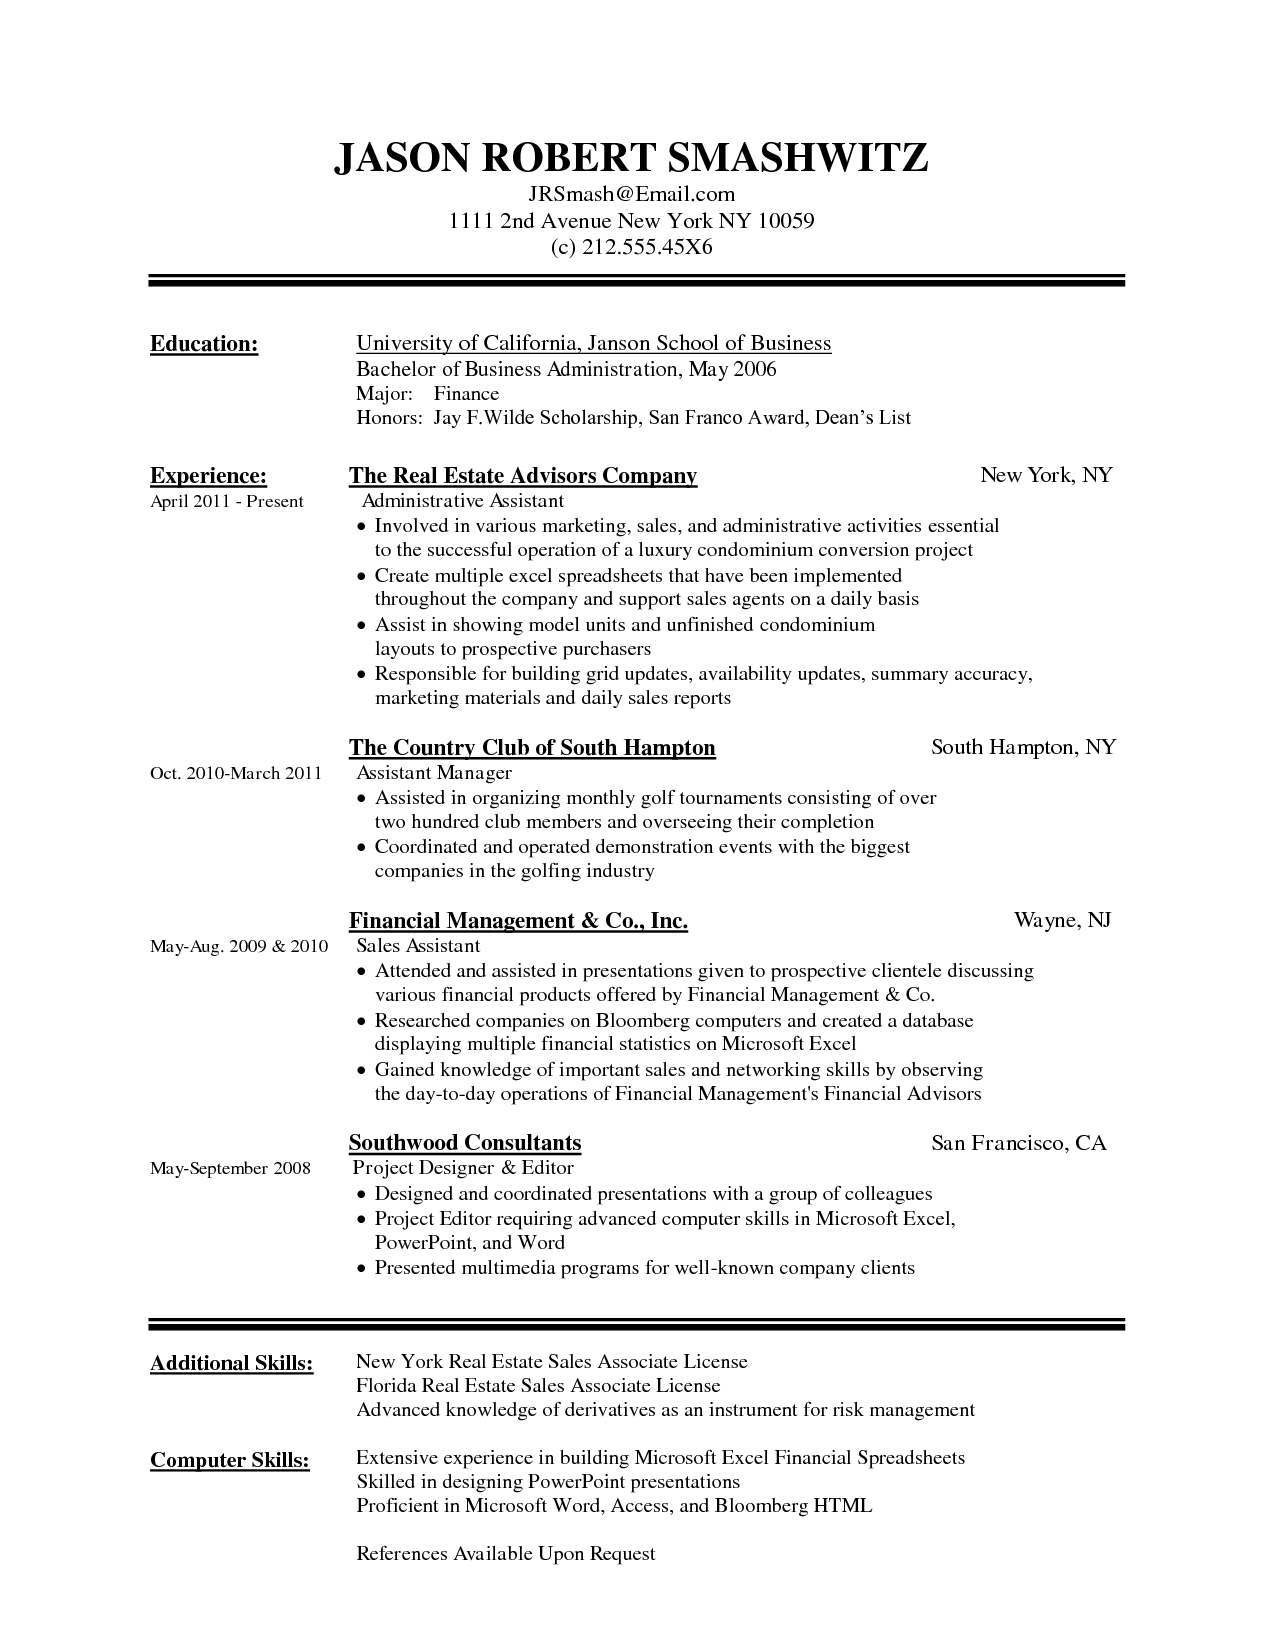 doc 612790 word templates resume 7 resume templates resume job template word job resume templates microsoft word word templates resume